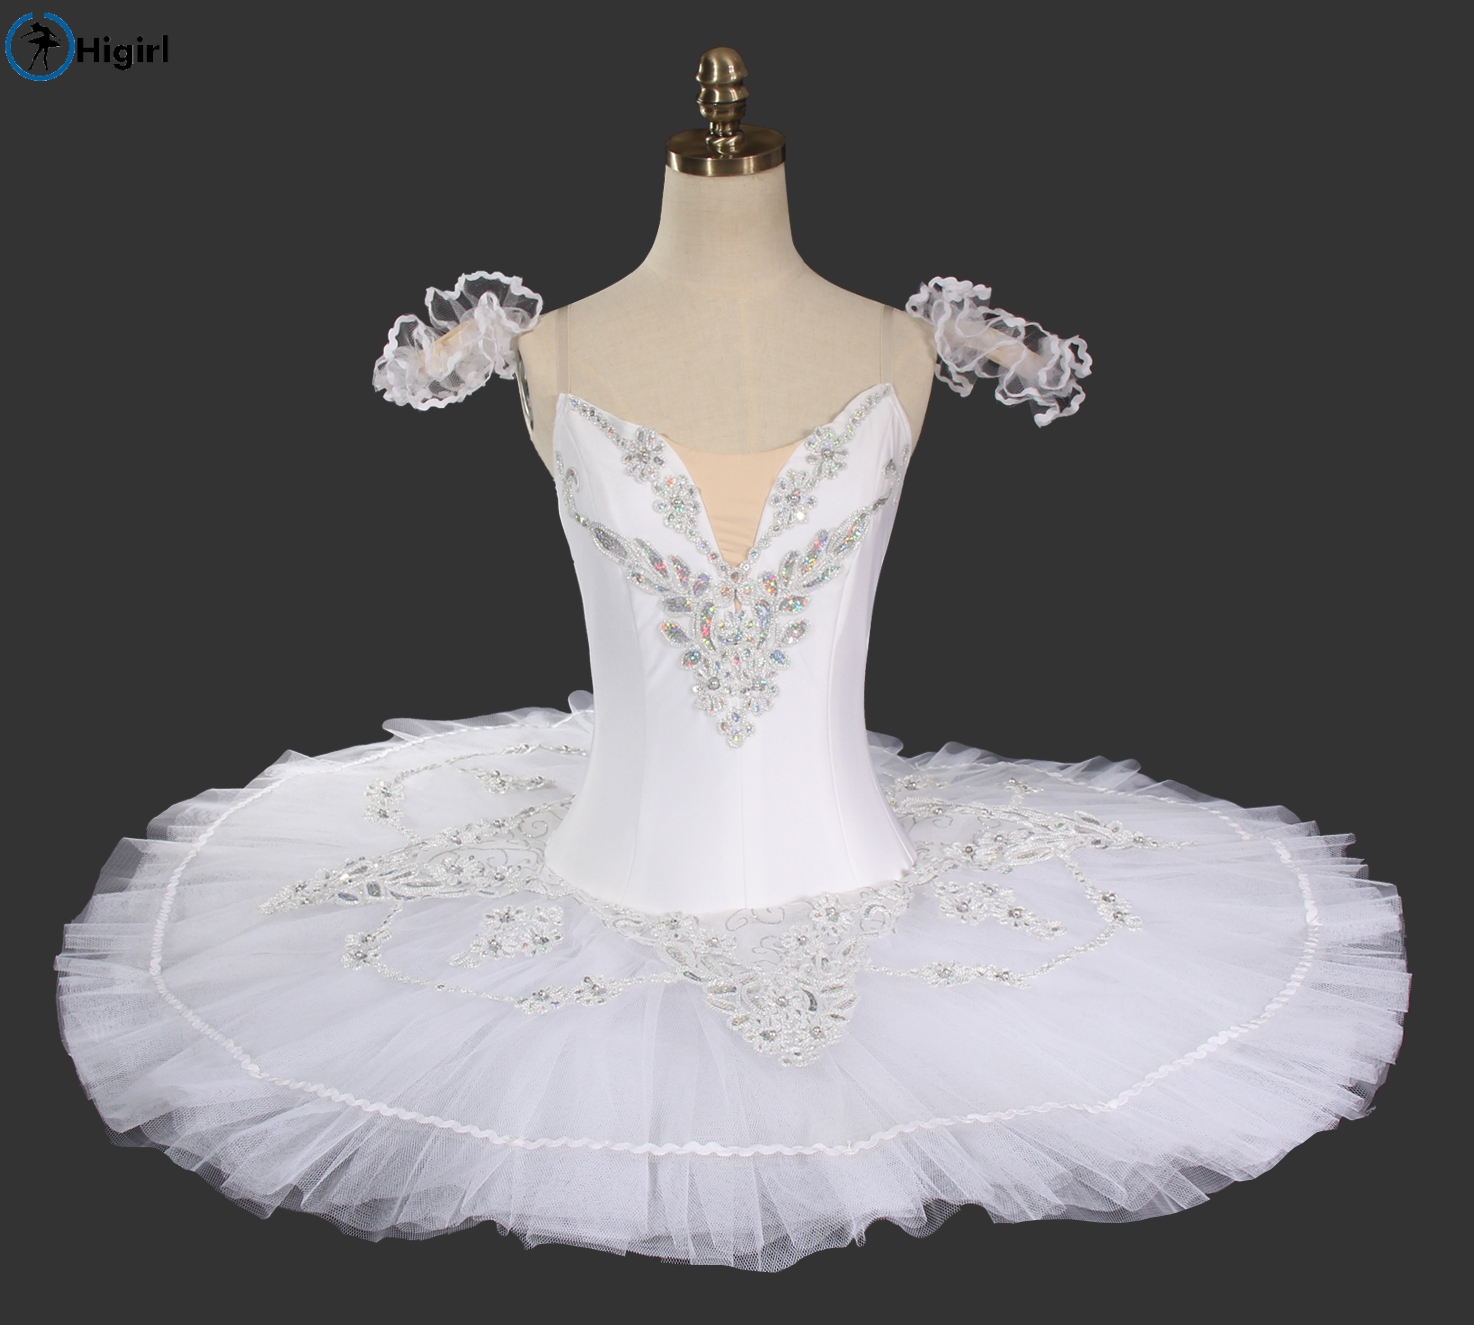 white bird classic ballet tutu sleep beauty professional ballet costumes girls swan lake ballet tutu whites